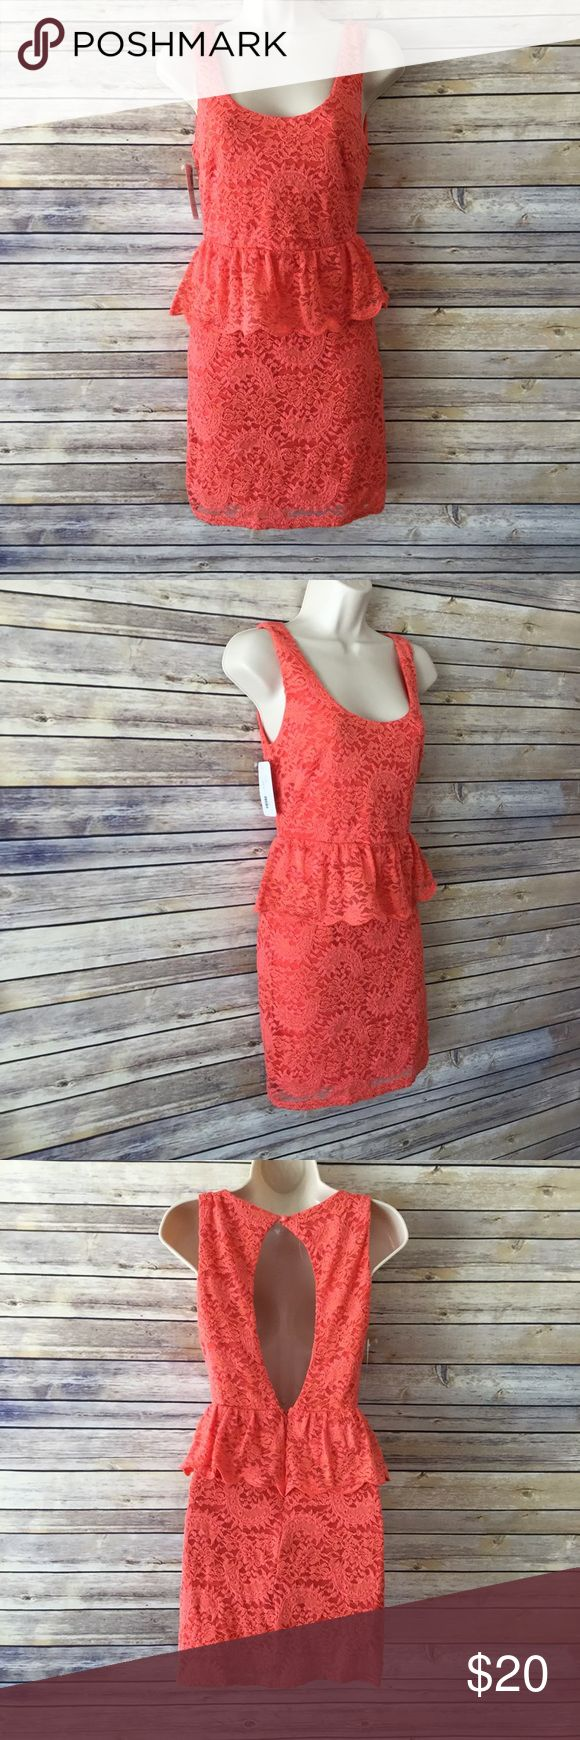 FLYING TOMATO Coral Lace Dress NWT Style description: FLYING TOMATO Coral Lace Dress NWT  Size: S  Condition: New with tags!  Measurements available upon request and all are taken while laying flat.Measurements are approximate. Flying Tomato Dresses